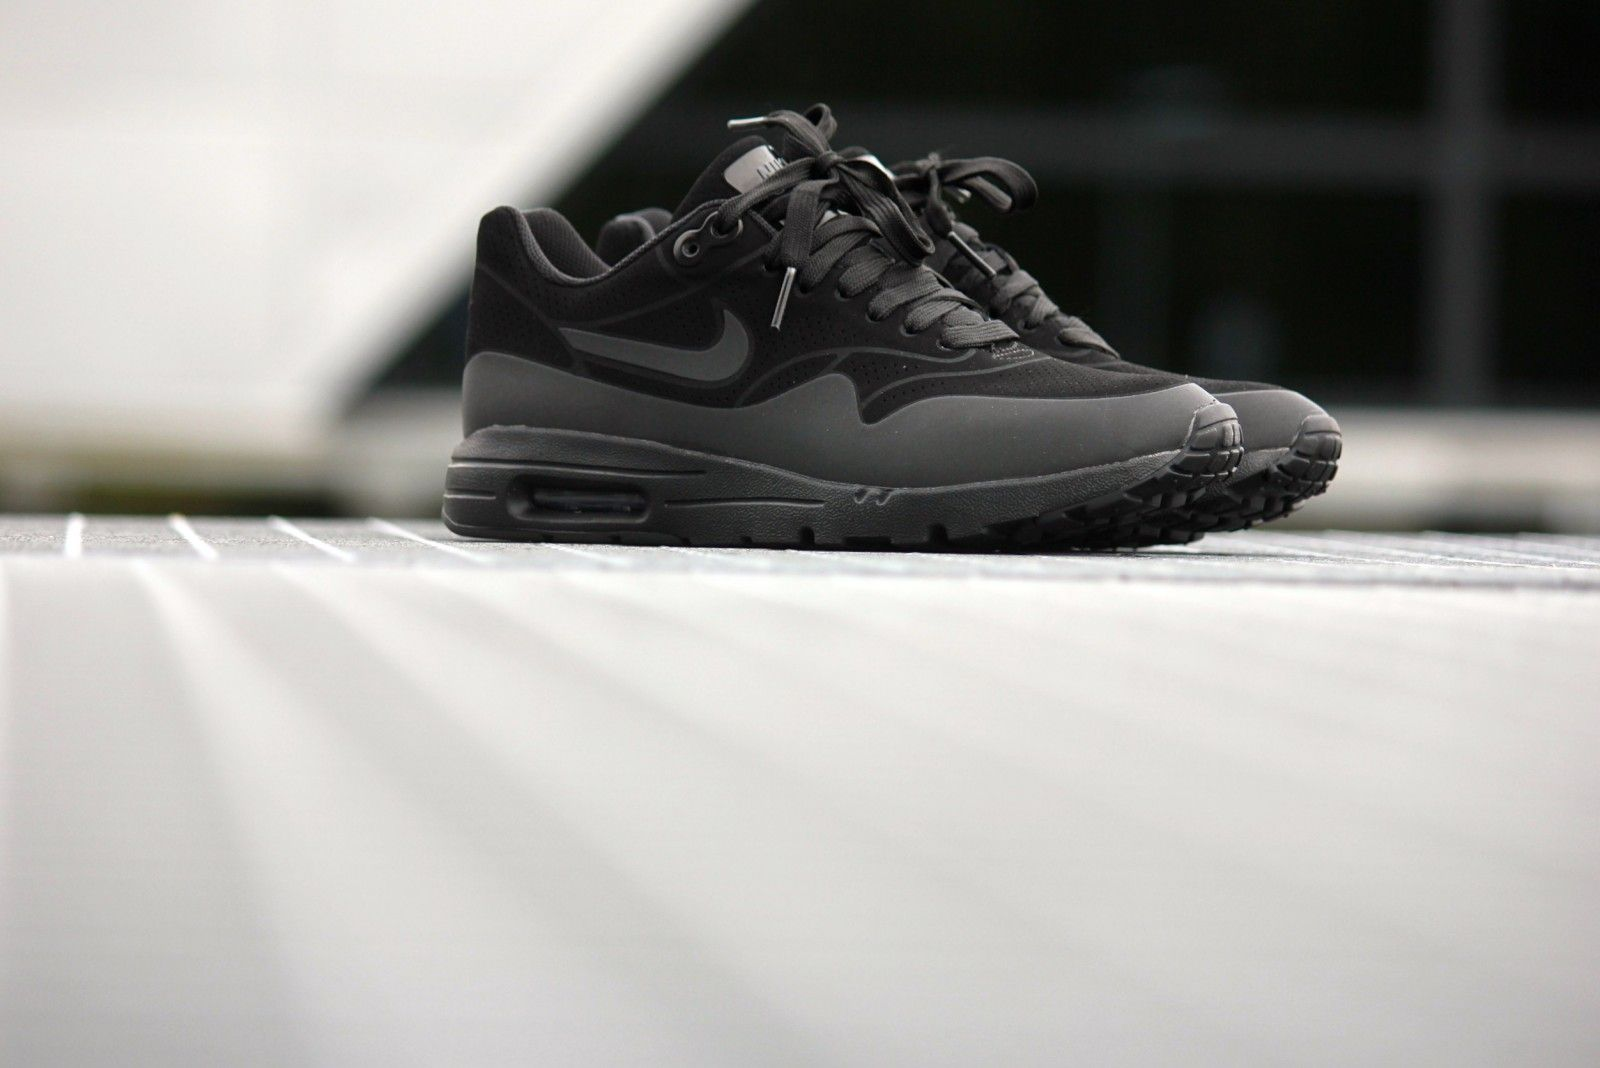 Nike Wmns Air max 1 Ultra Moire Black Anthracite 704995